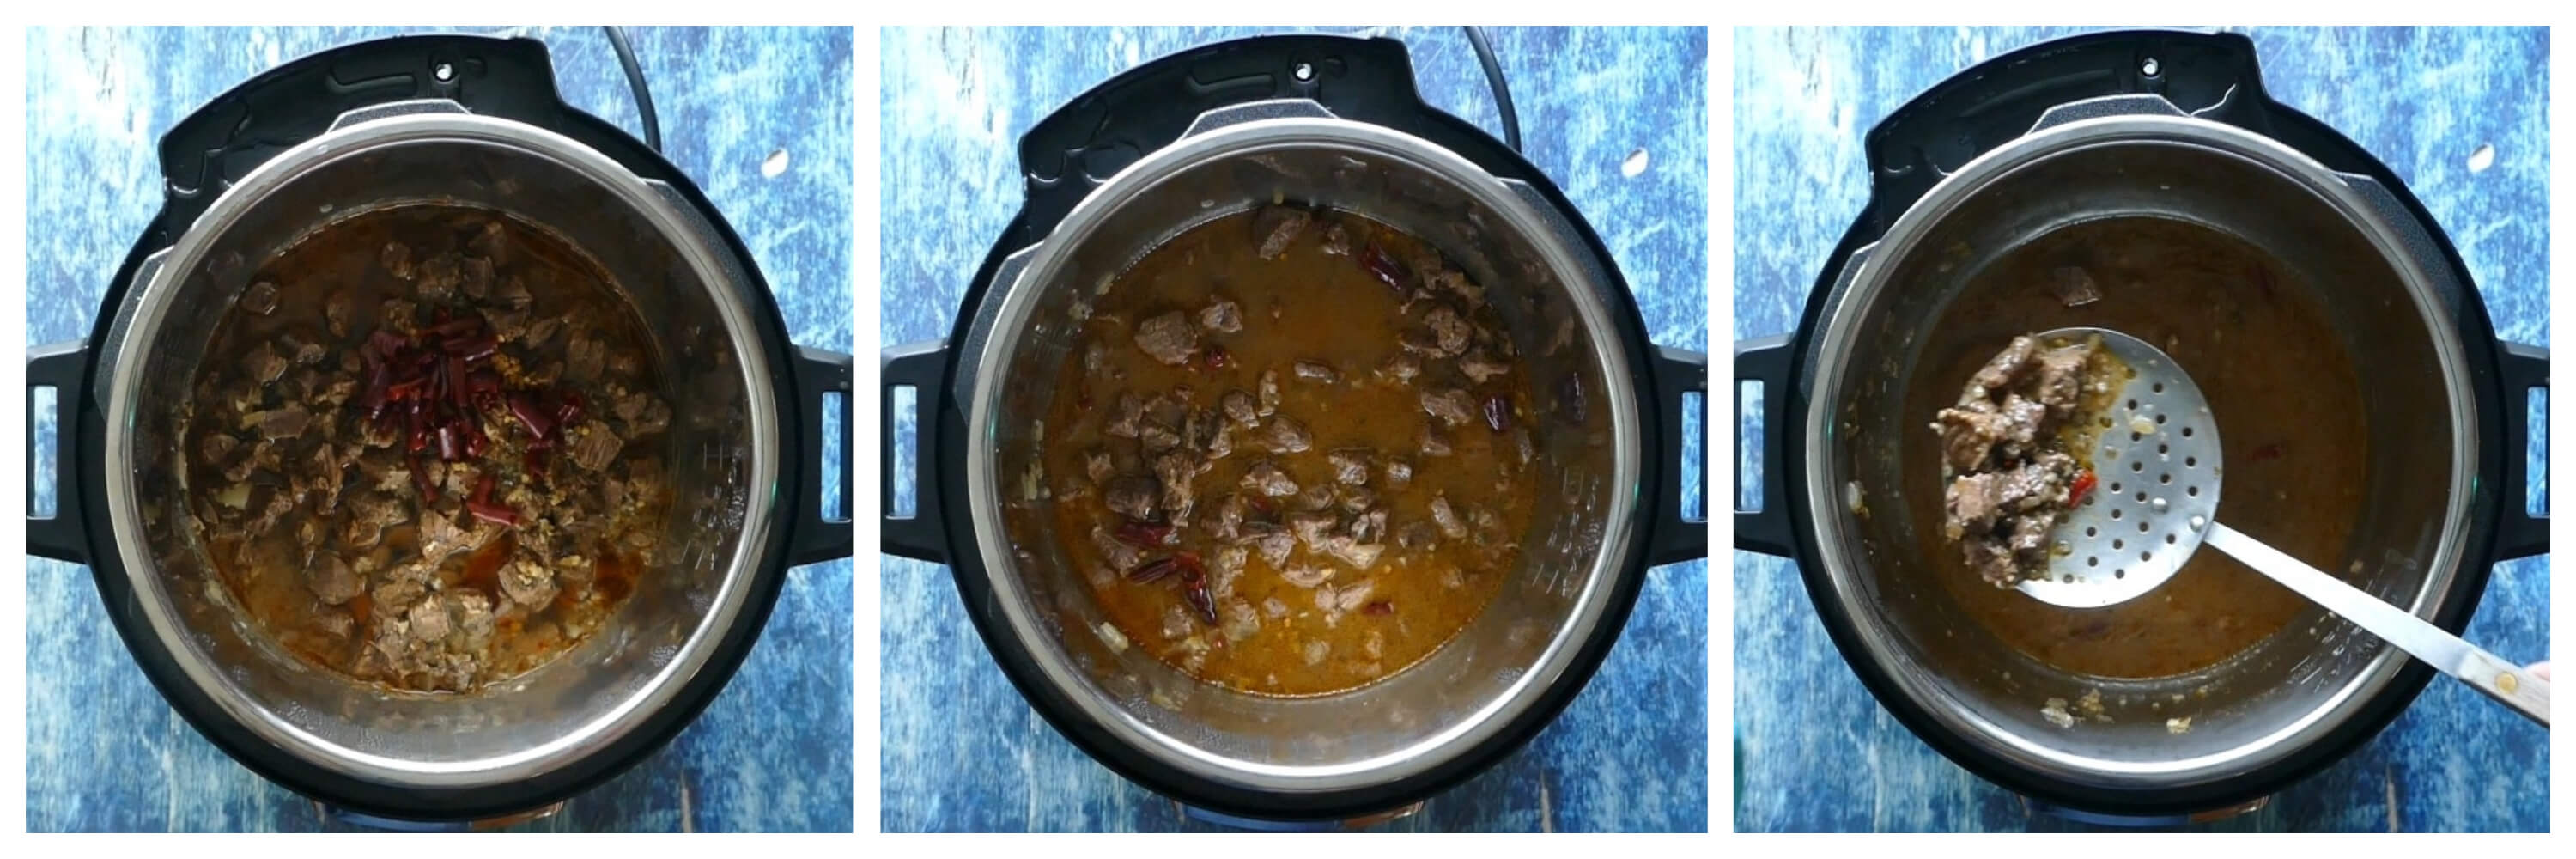 Instant Pot Carne Asada Step by Step Instructions 3 Collage - Cooked meat, stirred, remove with a slotted spoon